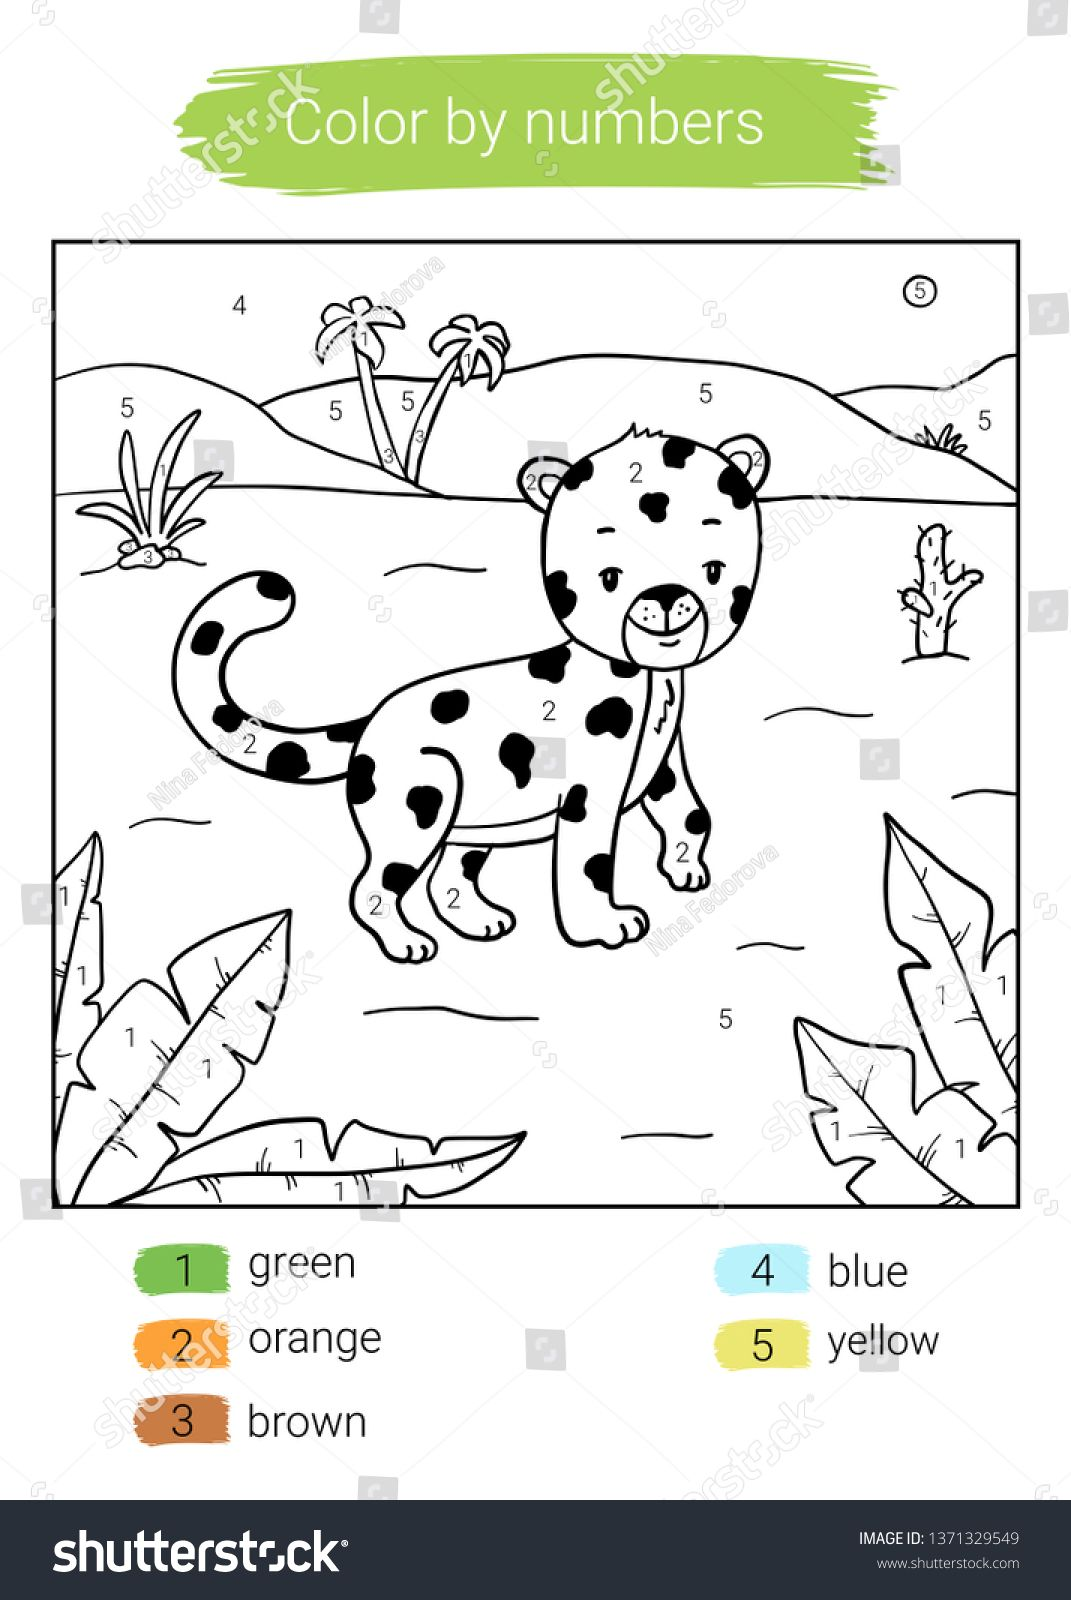 Color By Number Leopard Educational Children Game Coloring Book Ad Spon Leopard Educational Color Number Coloring Books Games For Kids Color